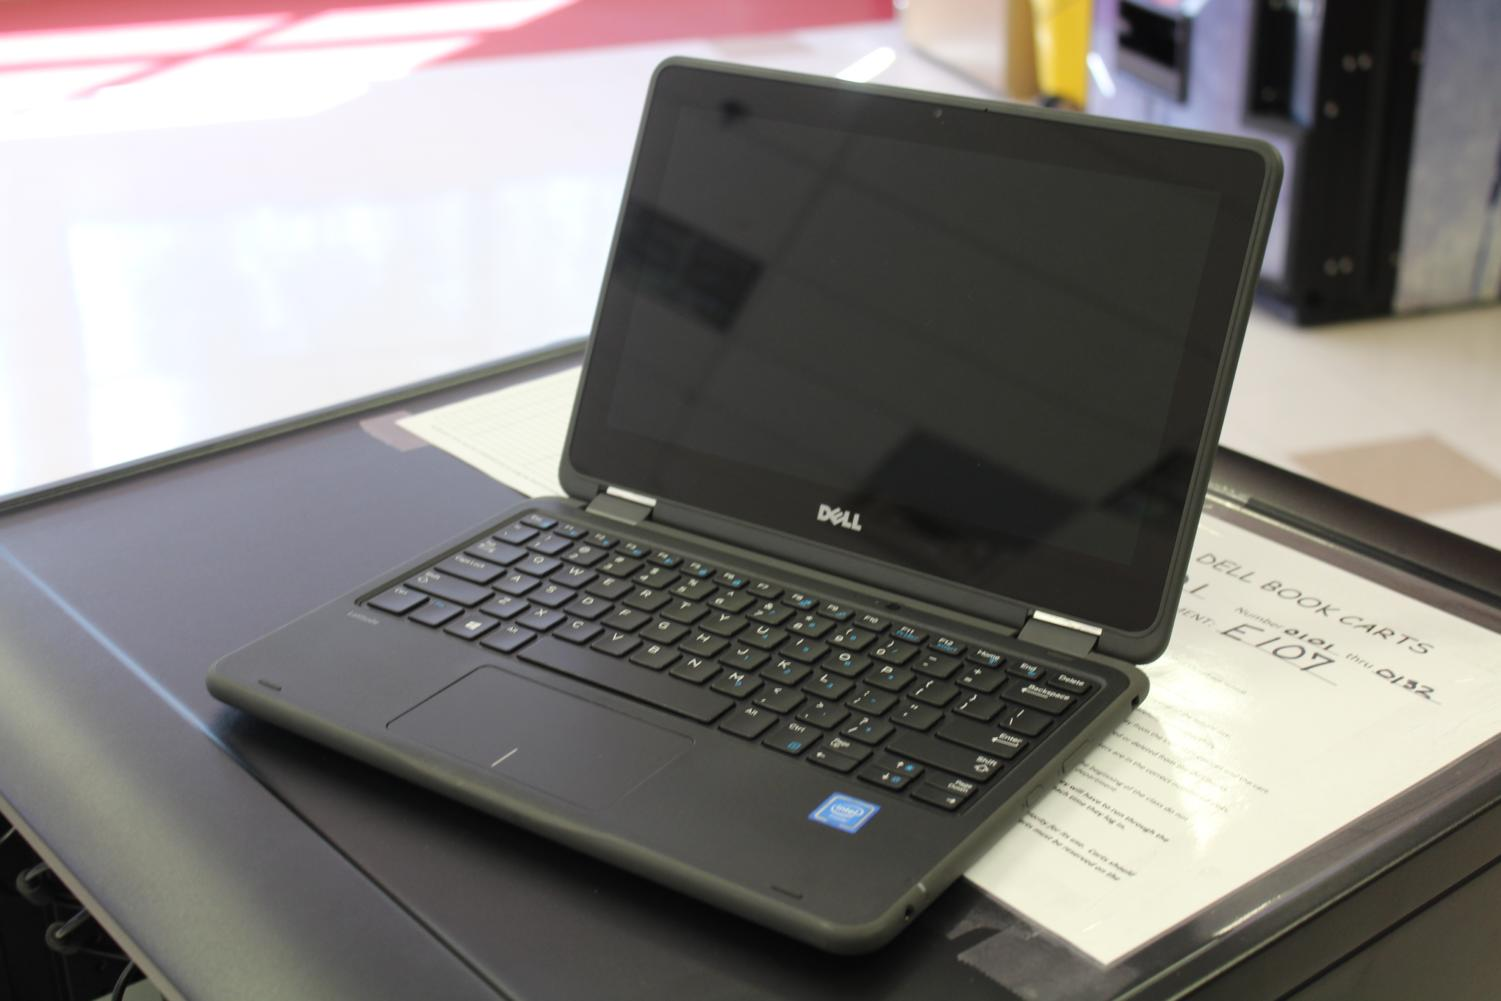 The new Dell computers function both as laptops and tablets.